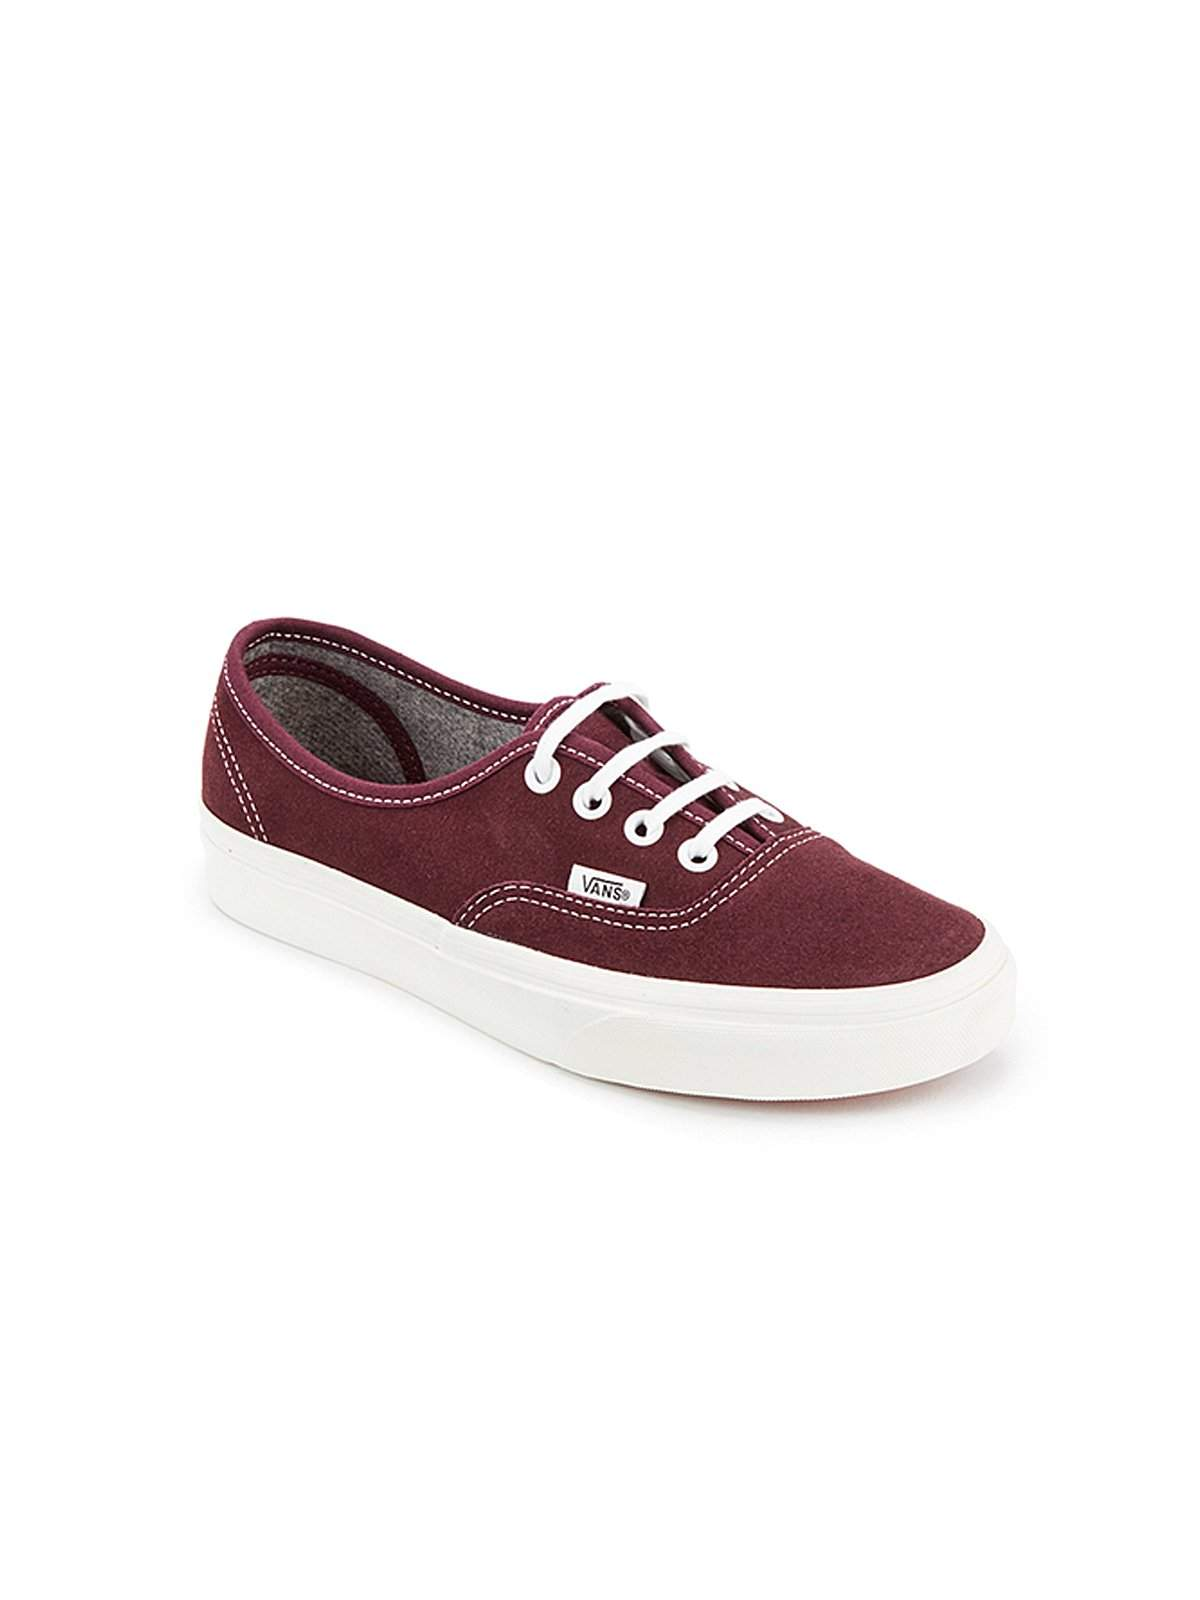 db6c7c1f31b Vans Authentic Trainers Varsity Suede Red - MORE by Morello - Indonesia